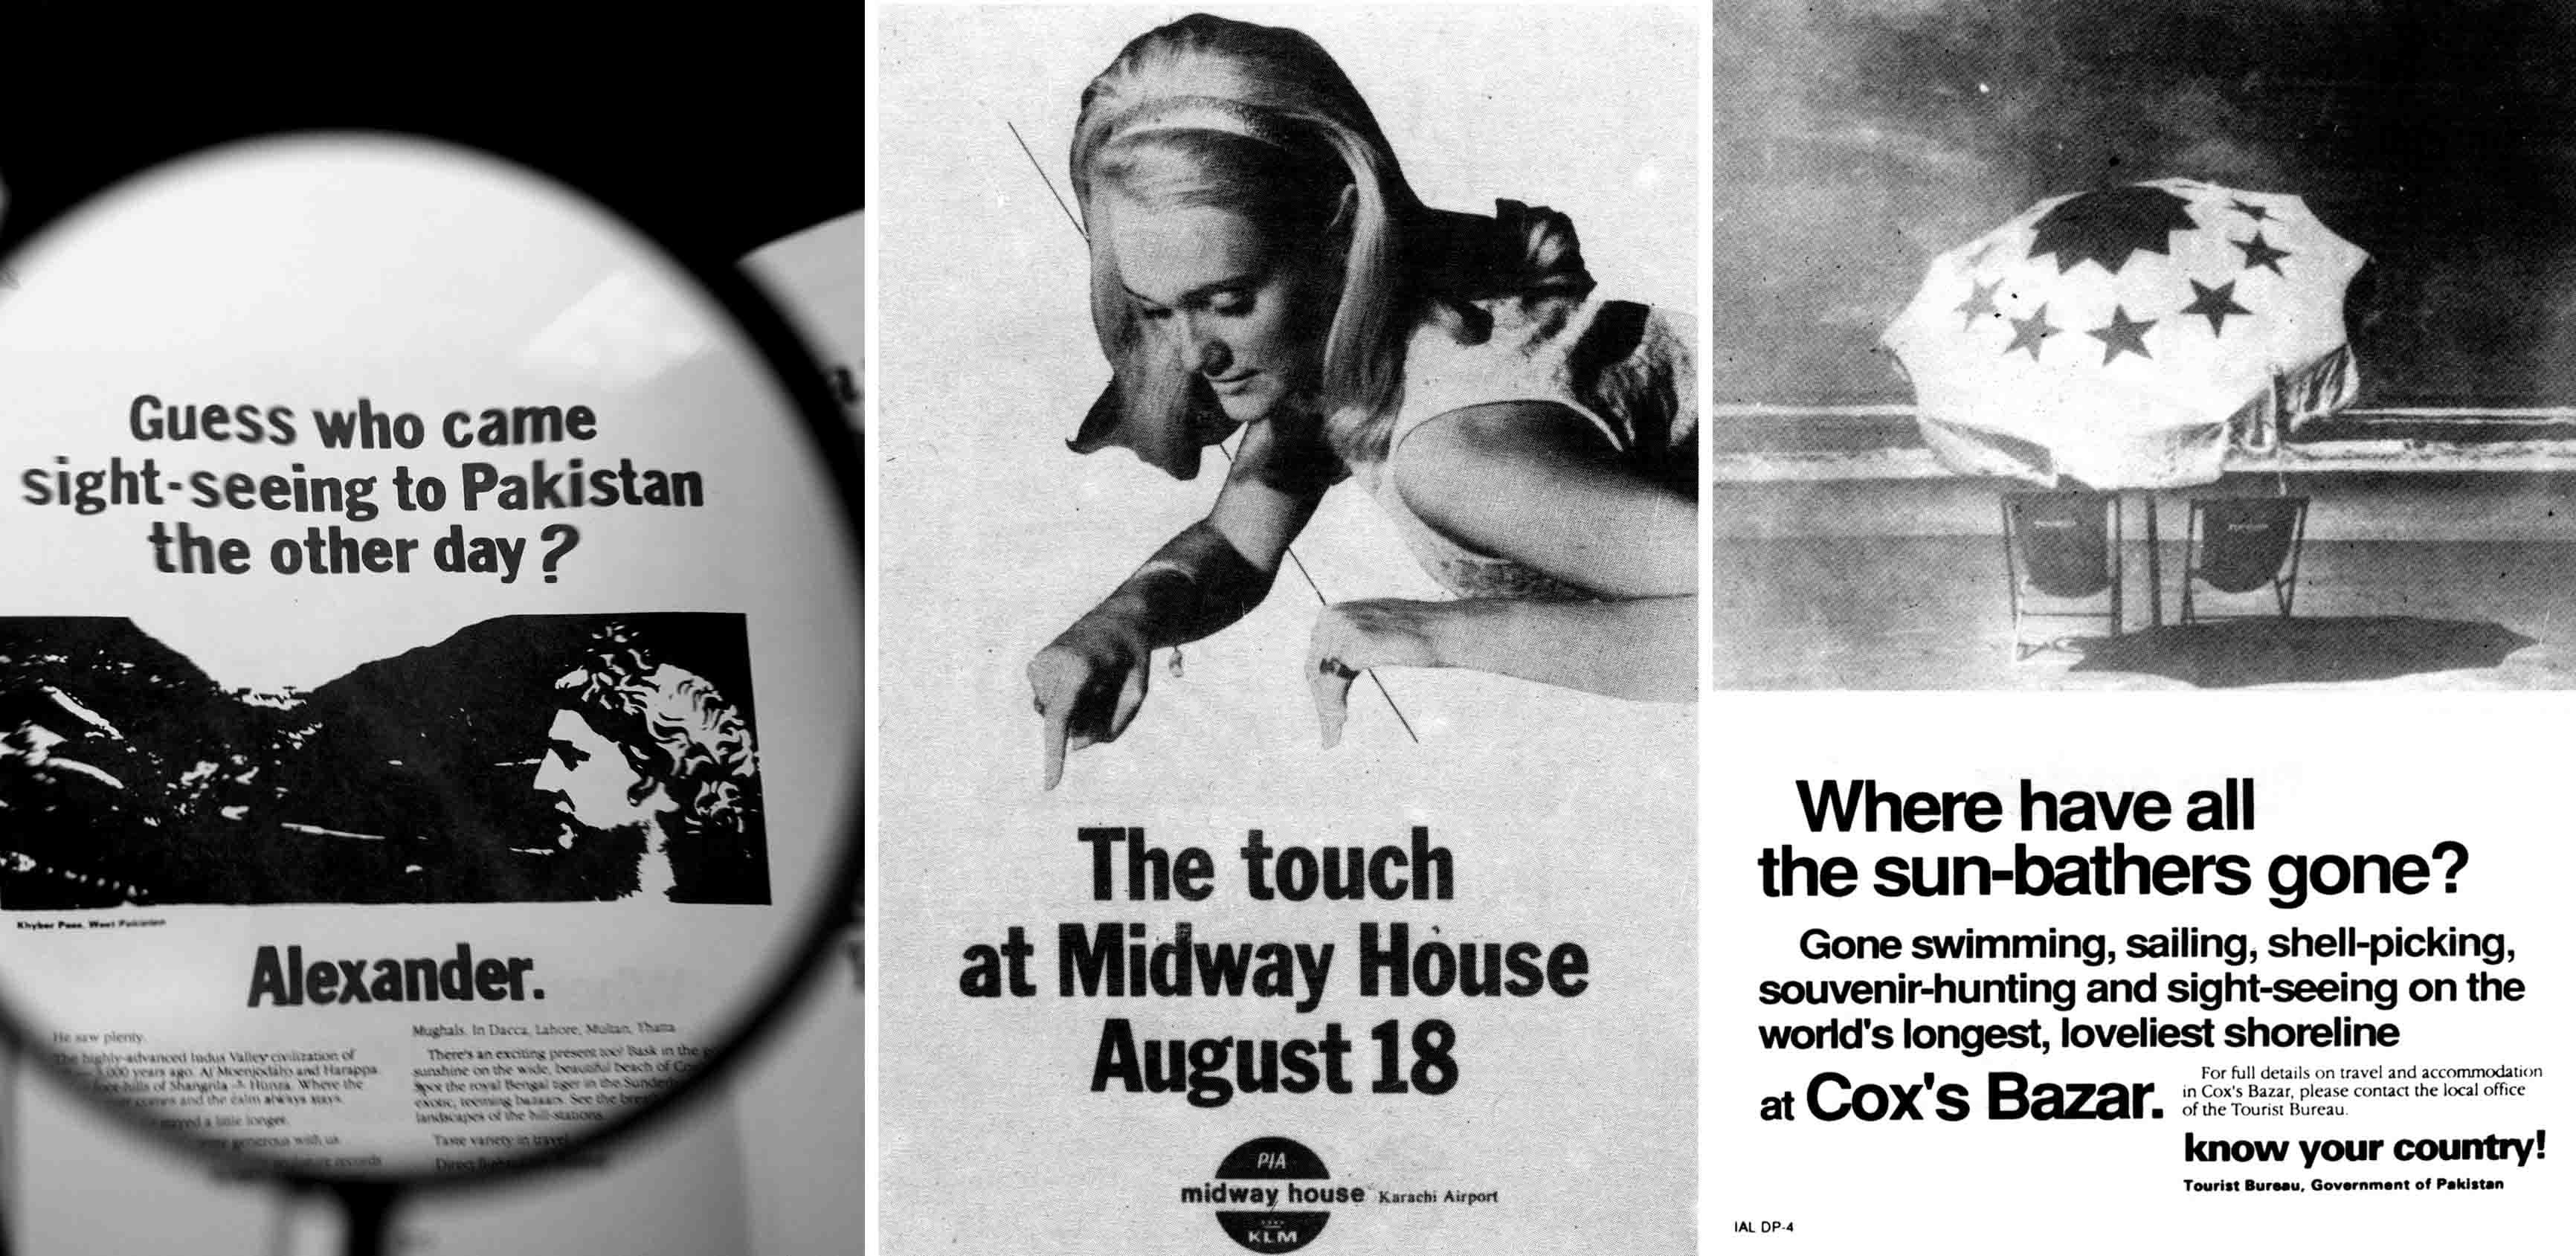 Advertisements for the Department of Tourism, Midway House (PIA & KLM's Airport Hotel), Cox's Bazar (located in Bangladesh and part of the 'Know your country campaign' for the Tourist Bureau) and Peek Freans have a single name in common: Javed Jabbar, co-founder MNJ Communications, one of the most influential agencies of the seventies and eighties.